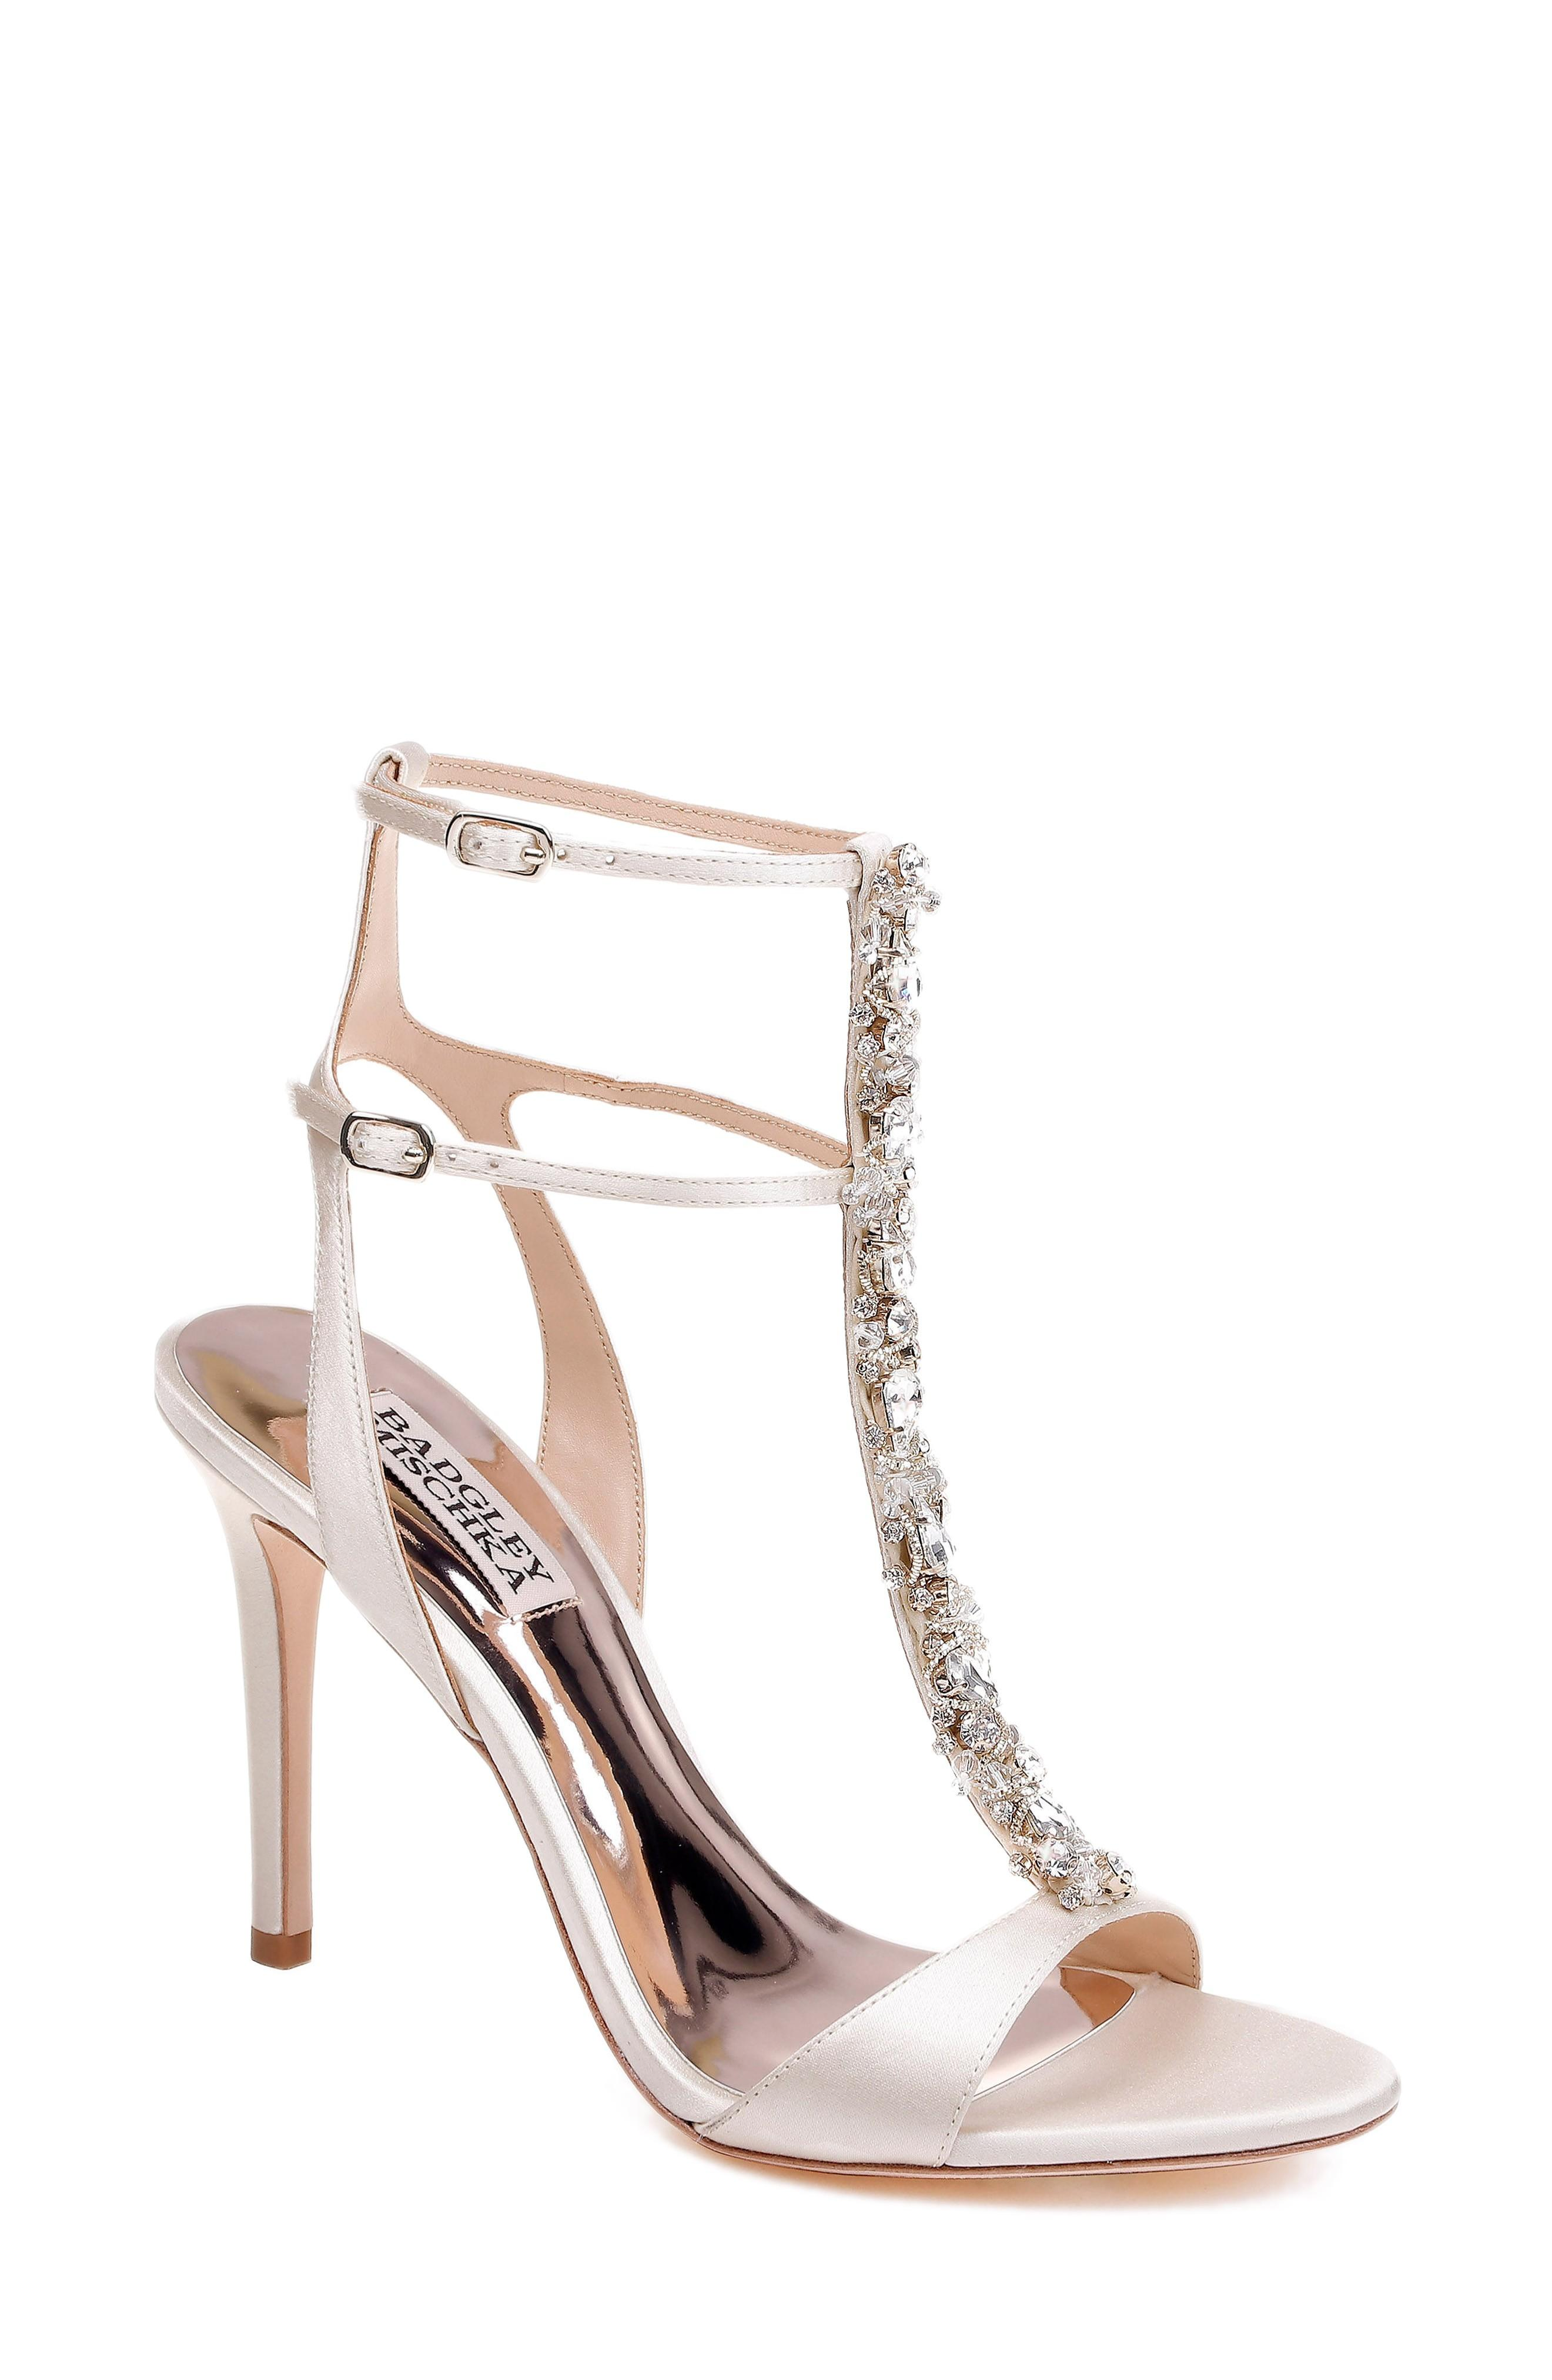 a83a8222eee Badgley Mischka Hollow T-Strap Embellished Sandal In Ivory Leather ...